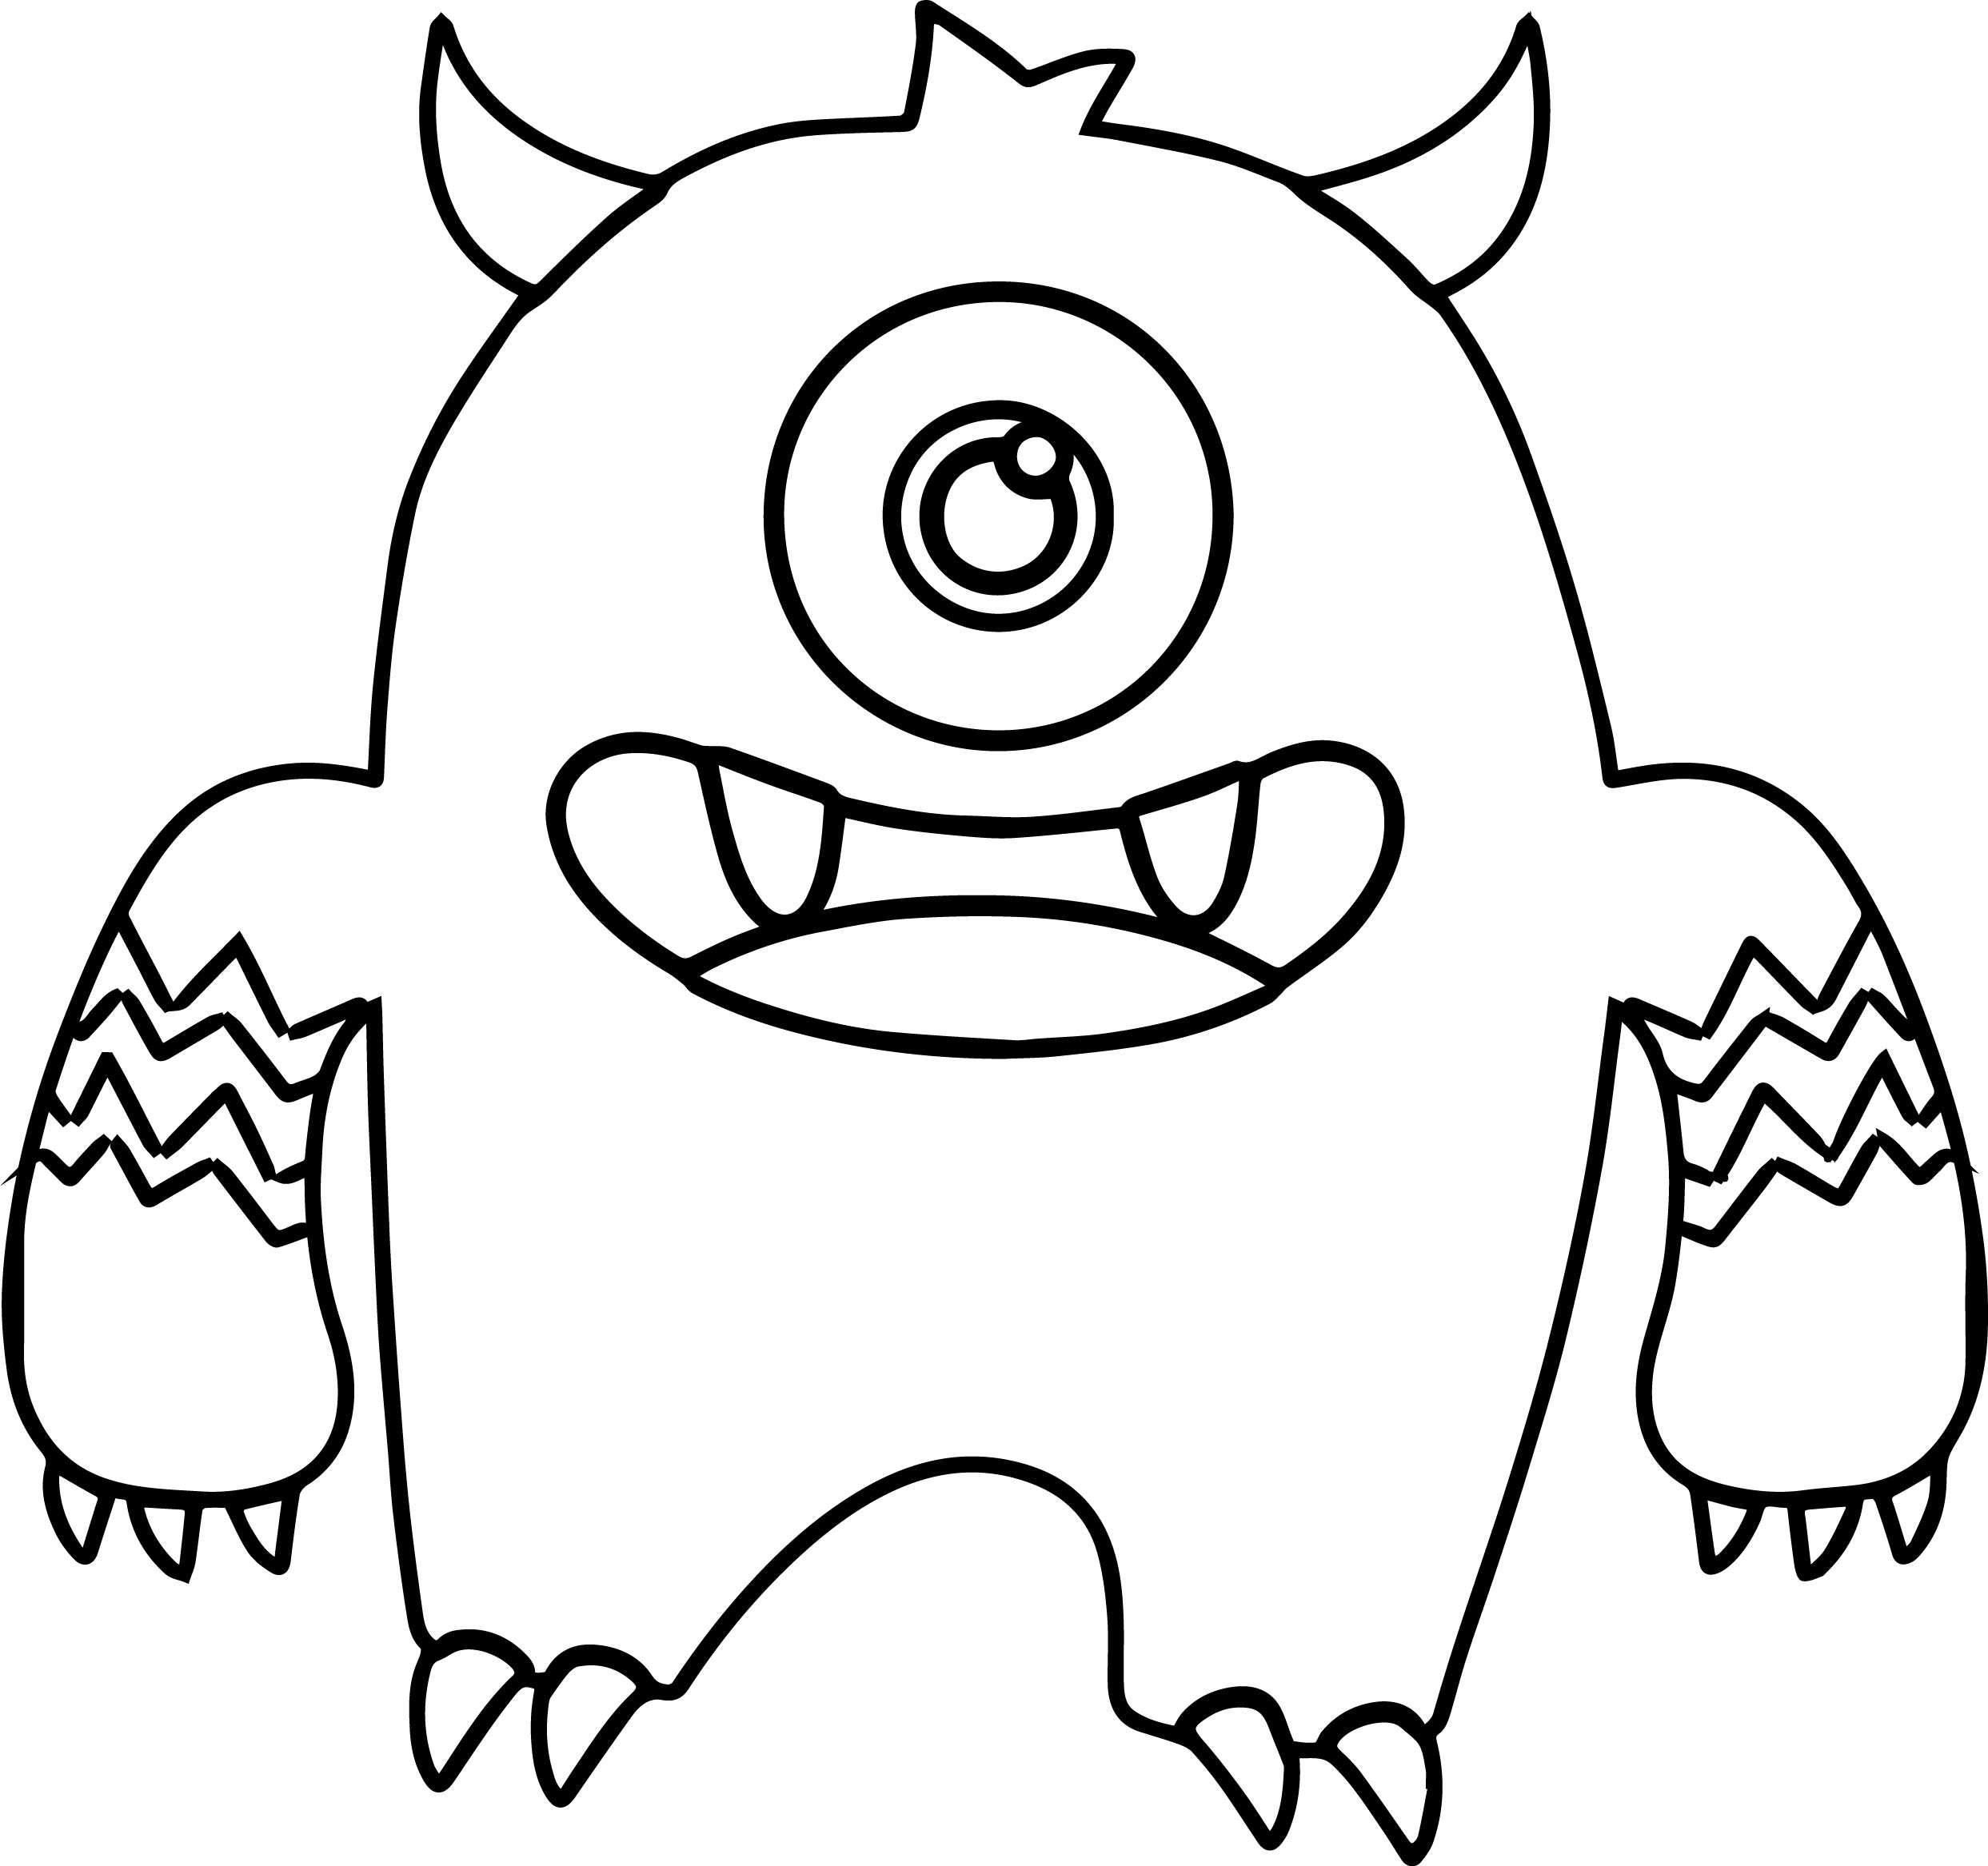 cartoon giant coloring pages | Alien Head Drawing at GetDrawings.com | Free for personal ...